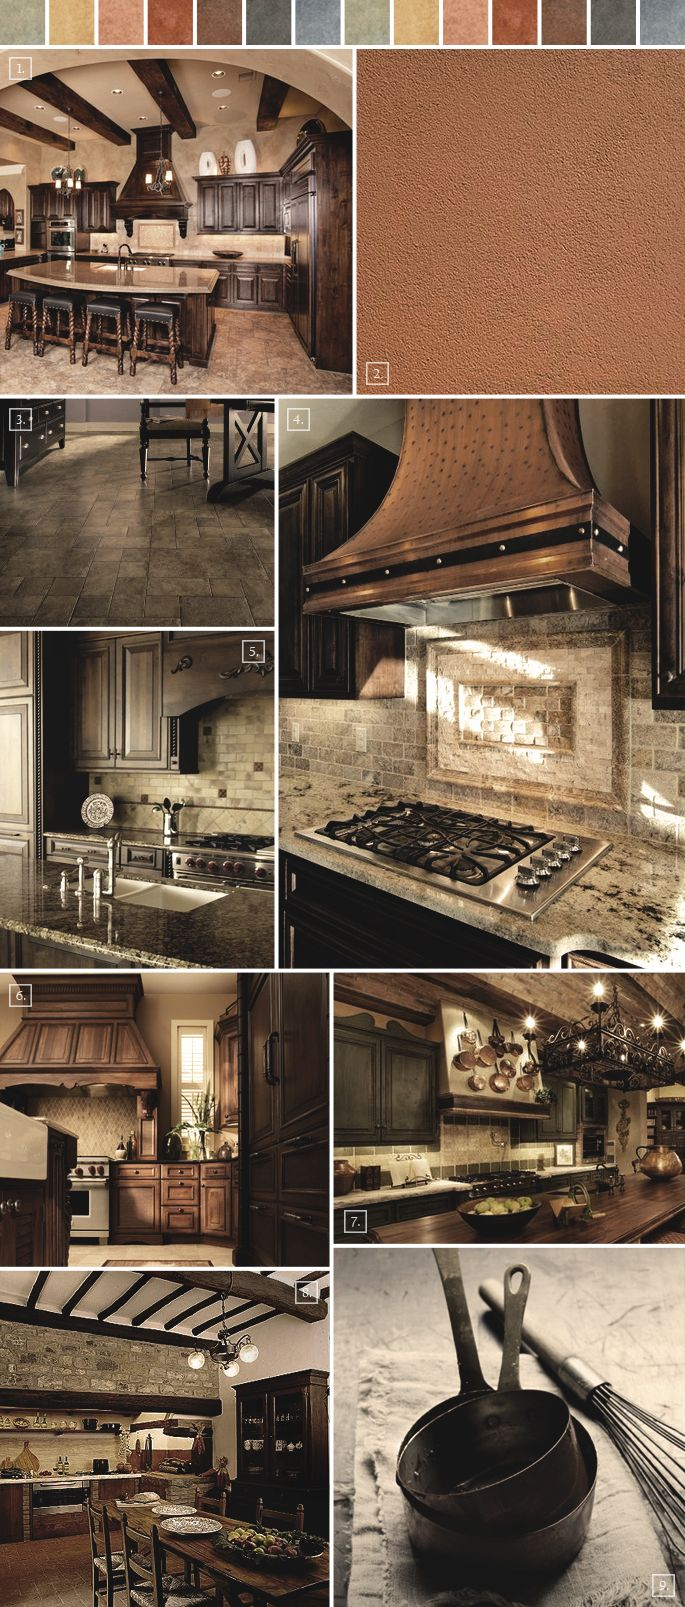 Color swatches at the top give interesting color ideas!  (Tuscan Kitchen Decor Ideas Mood Board | Home Tree Atlas)